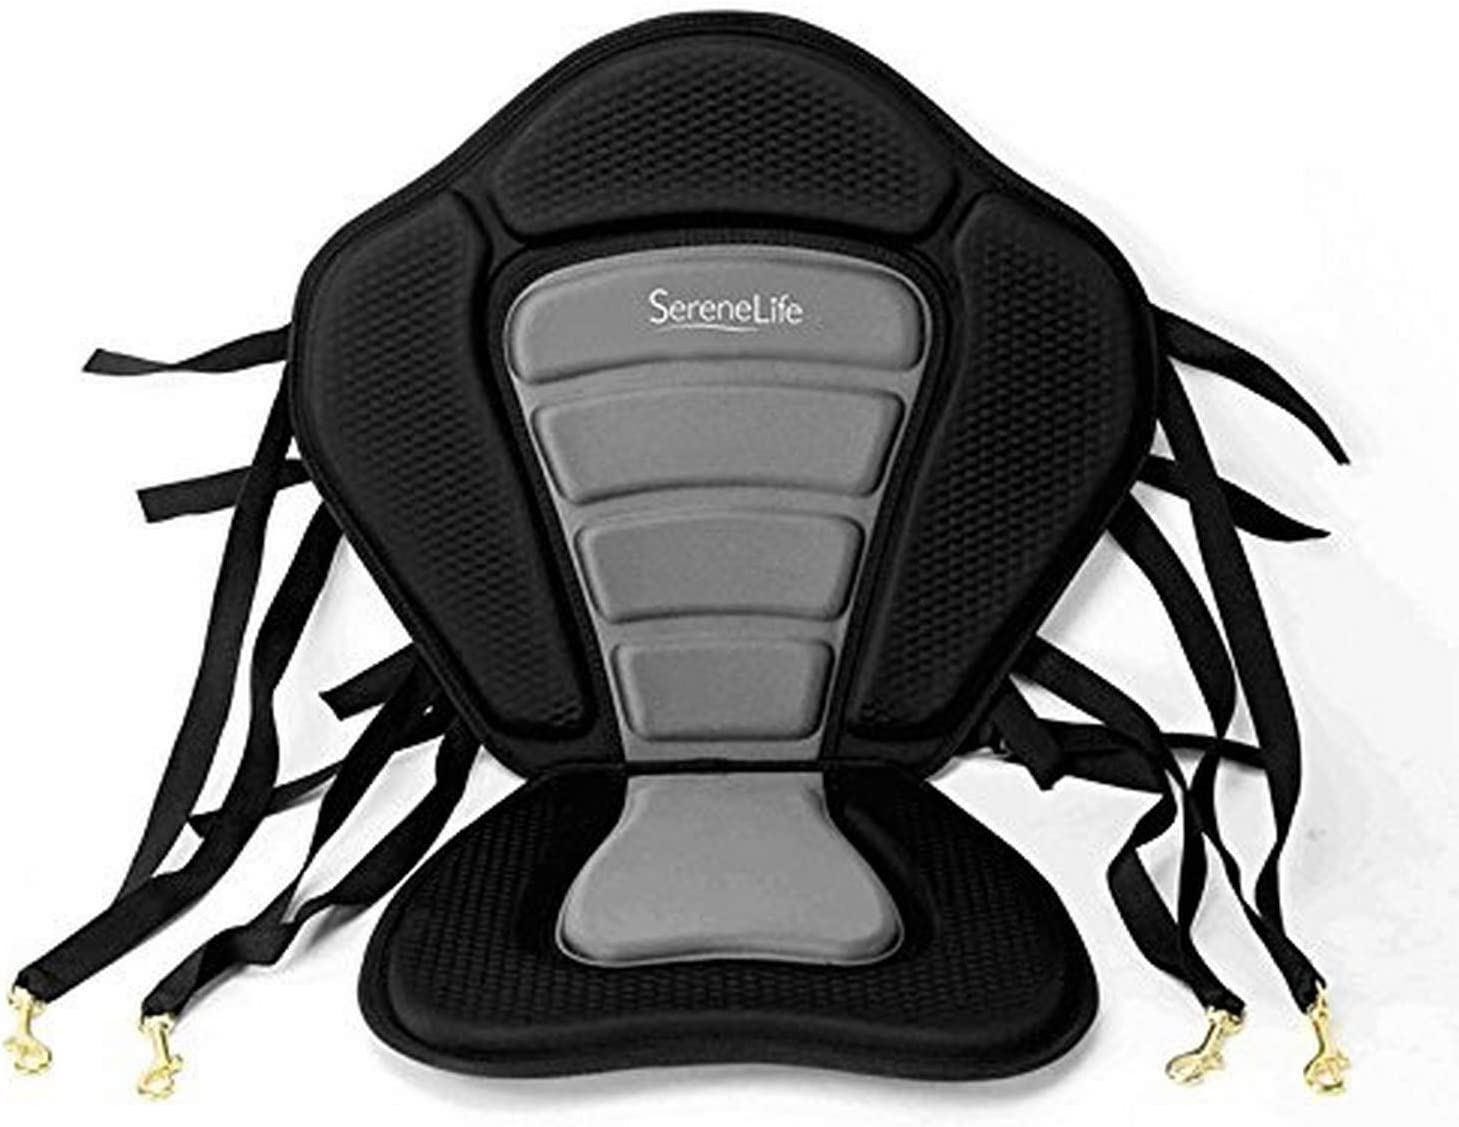 SereneLife AZSLSUPST15 Detachable Paddle-Board Seat Houston Mall Universal Outlet sale feature